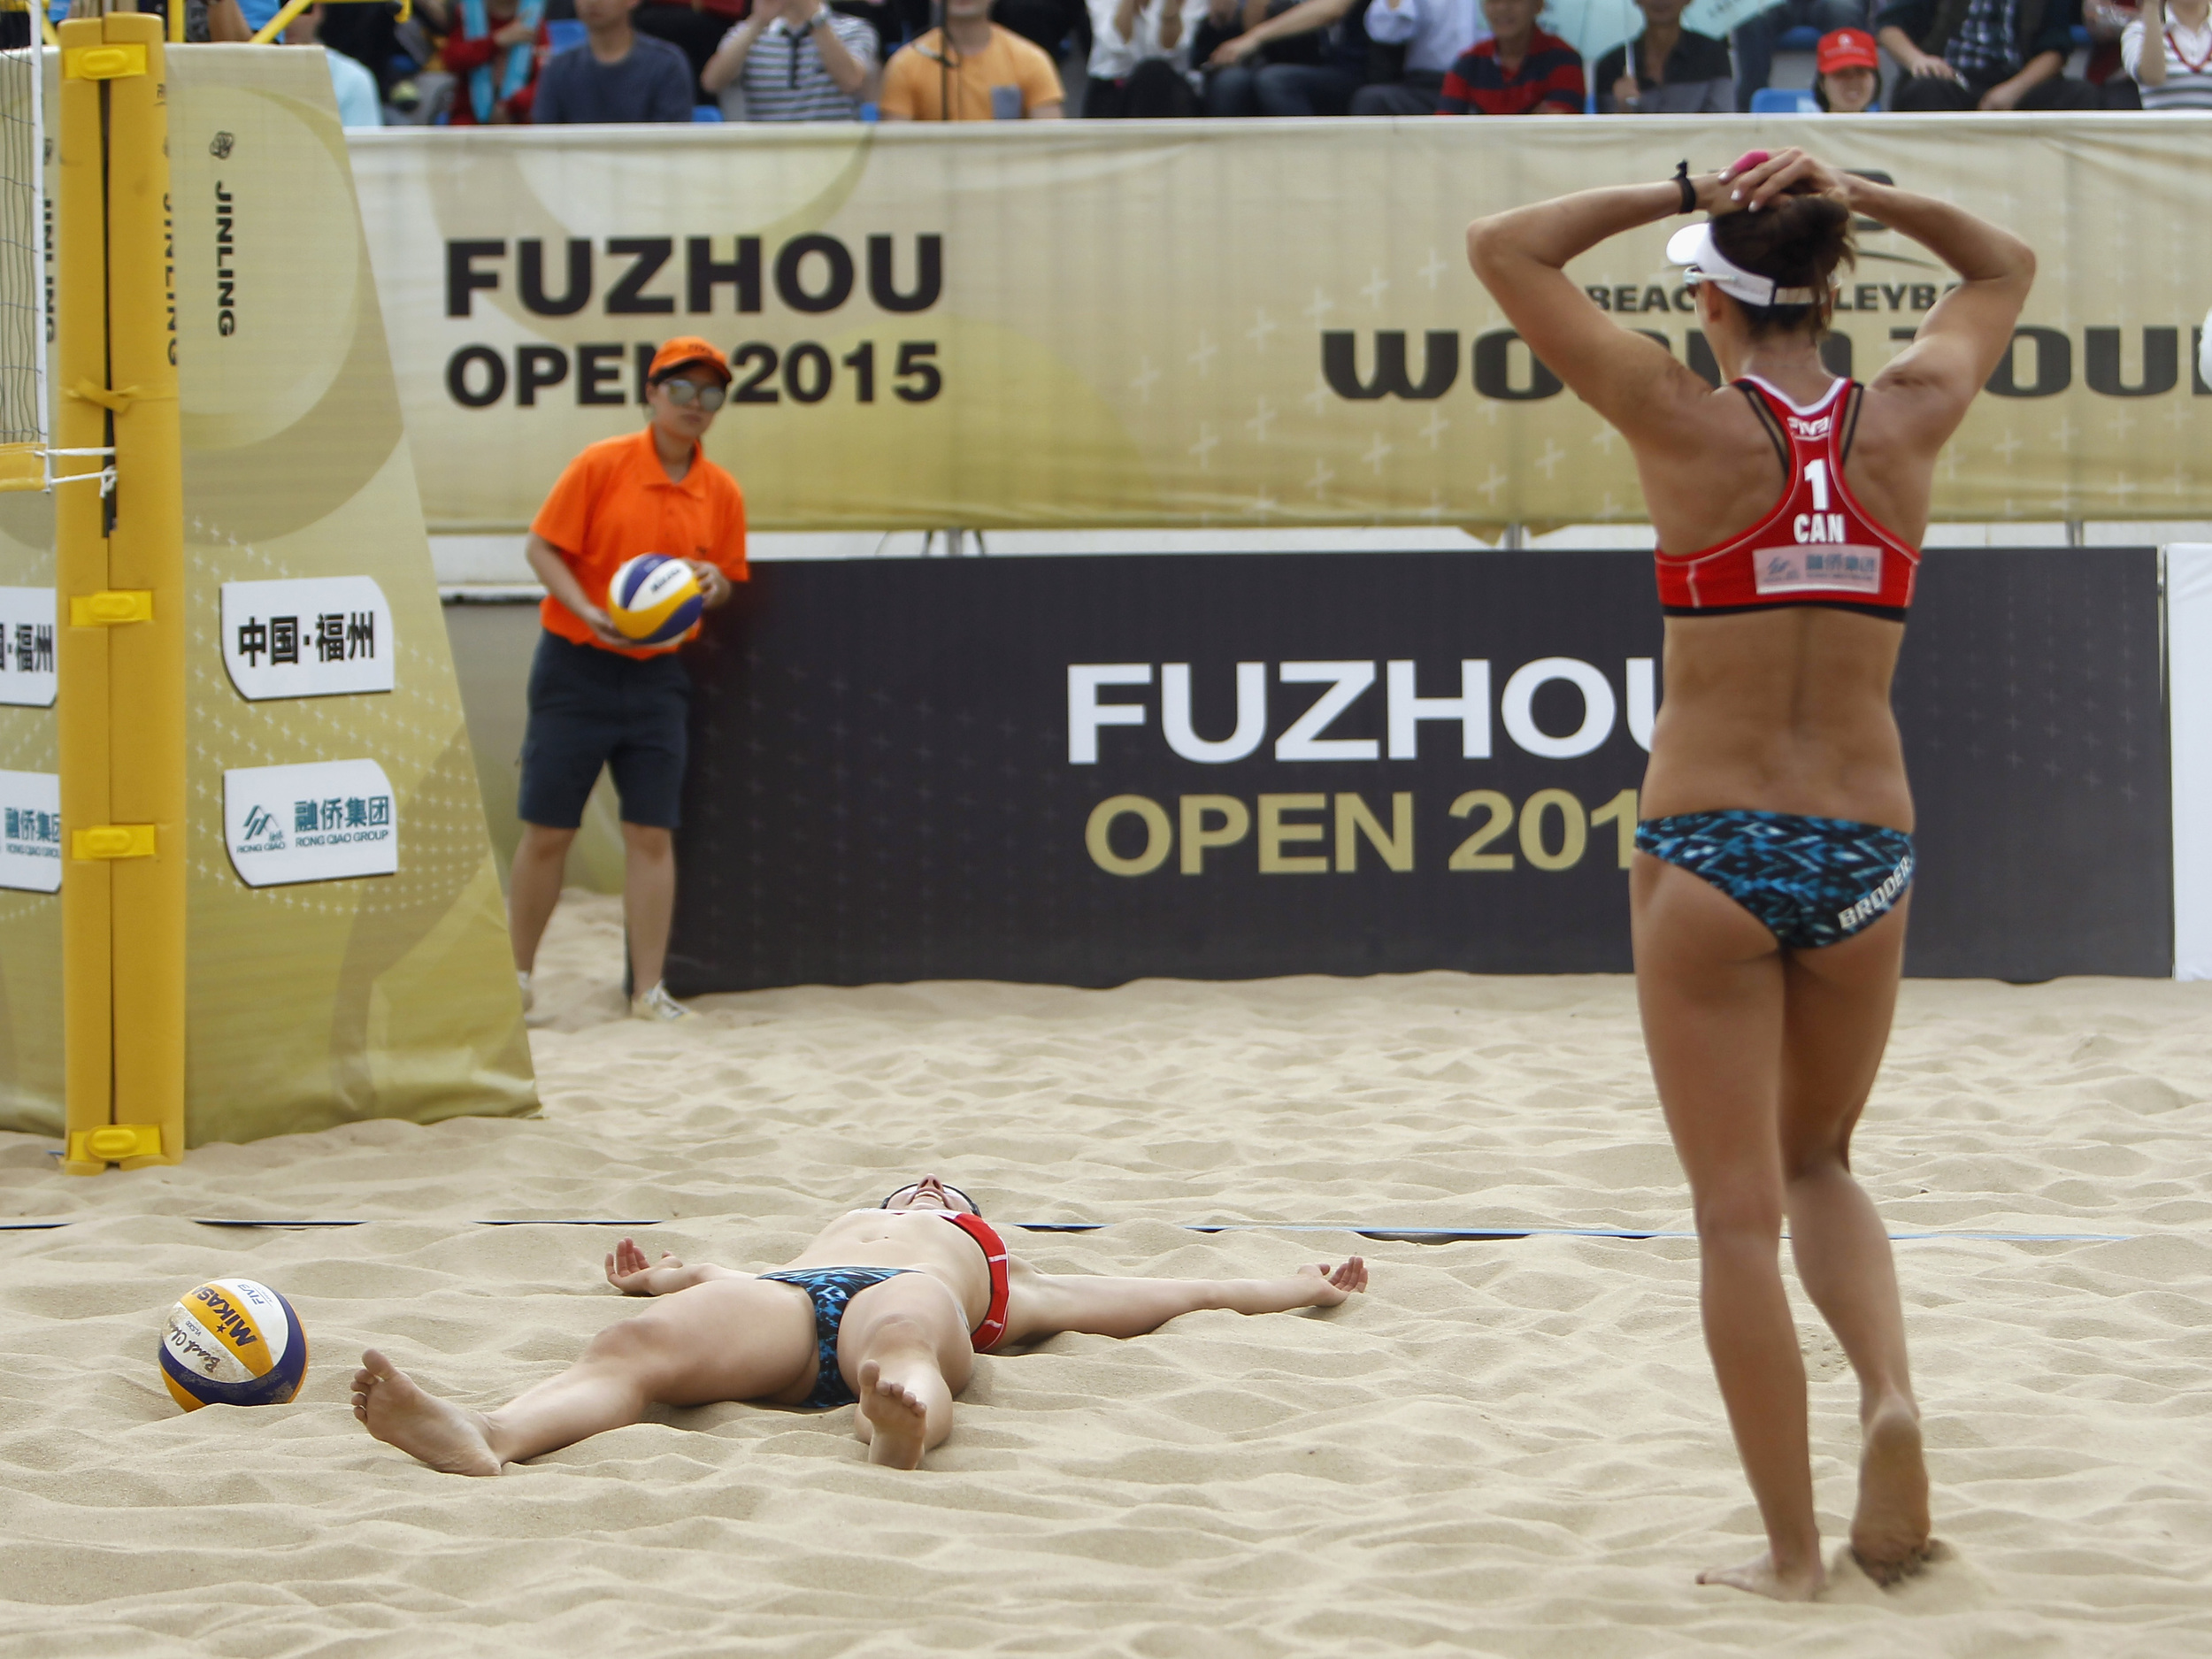 Kristina Valjas and Jamie Broder celebrate their first FIVB medal - a gold in Fuzhou  Photo: FIVB